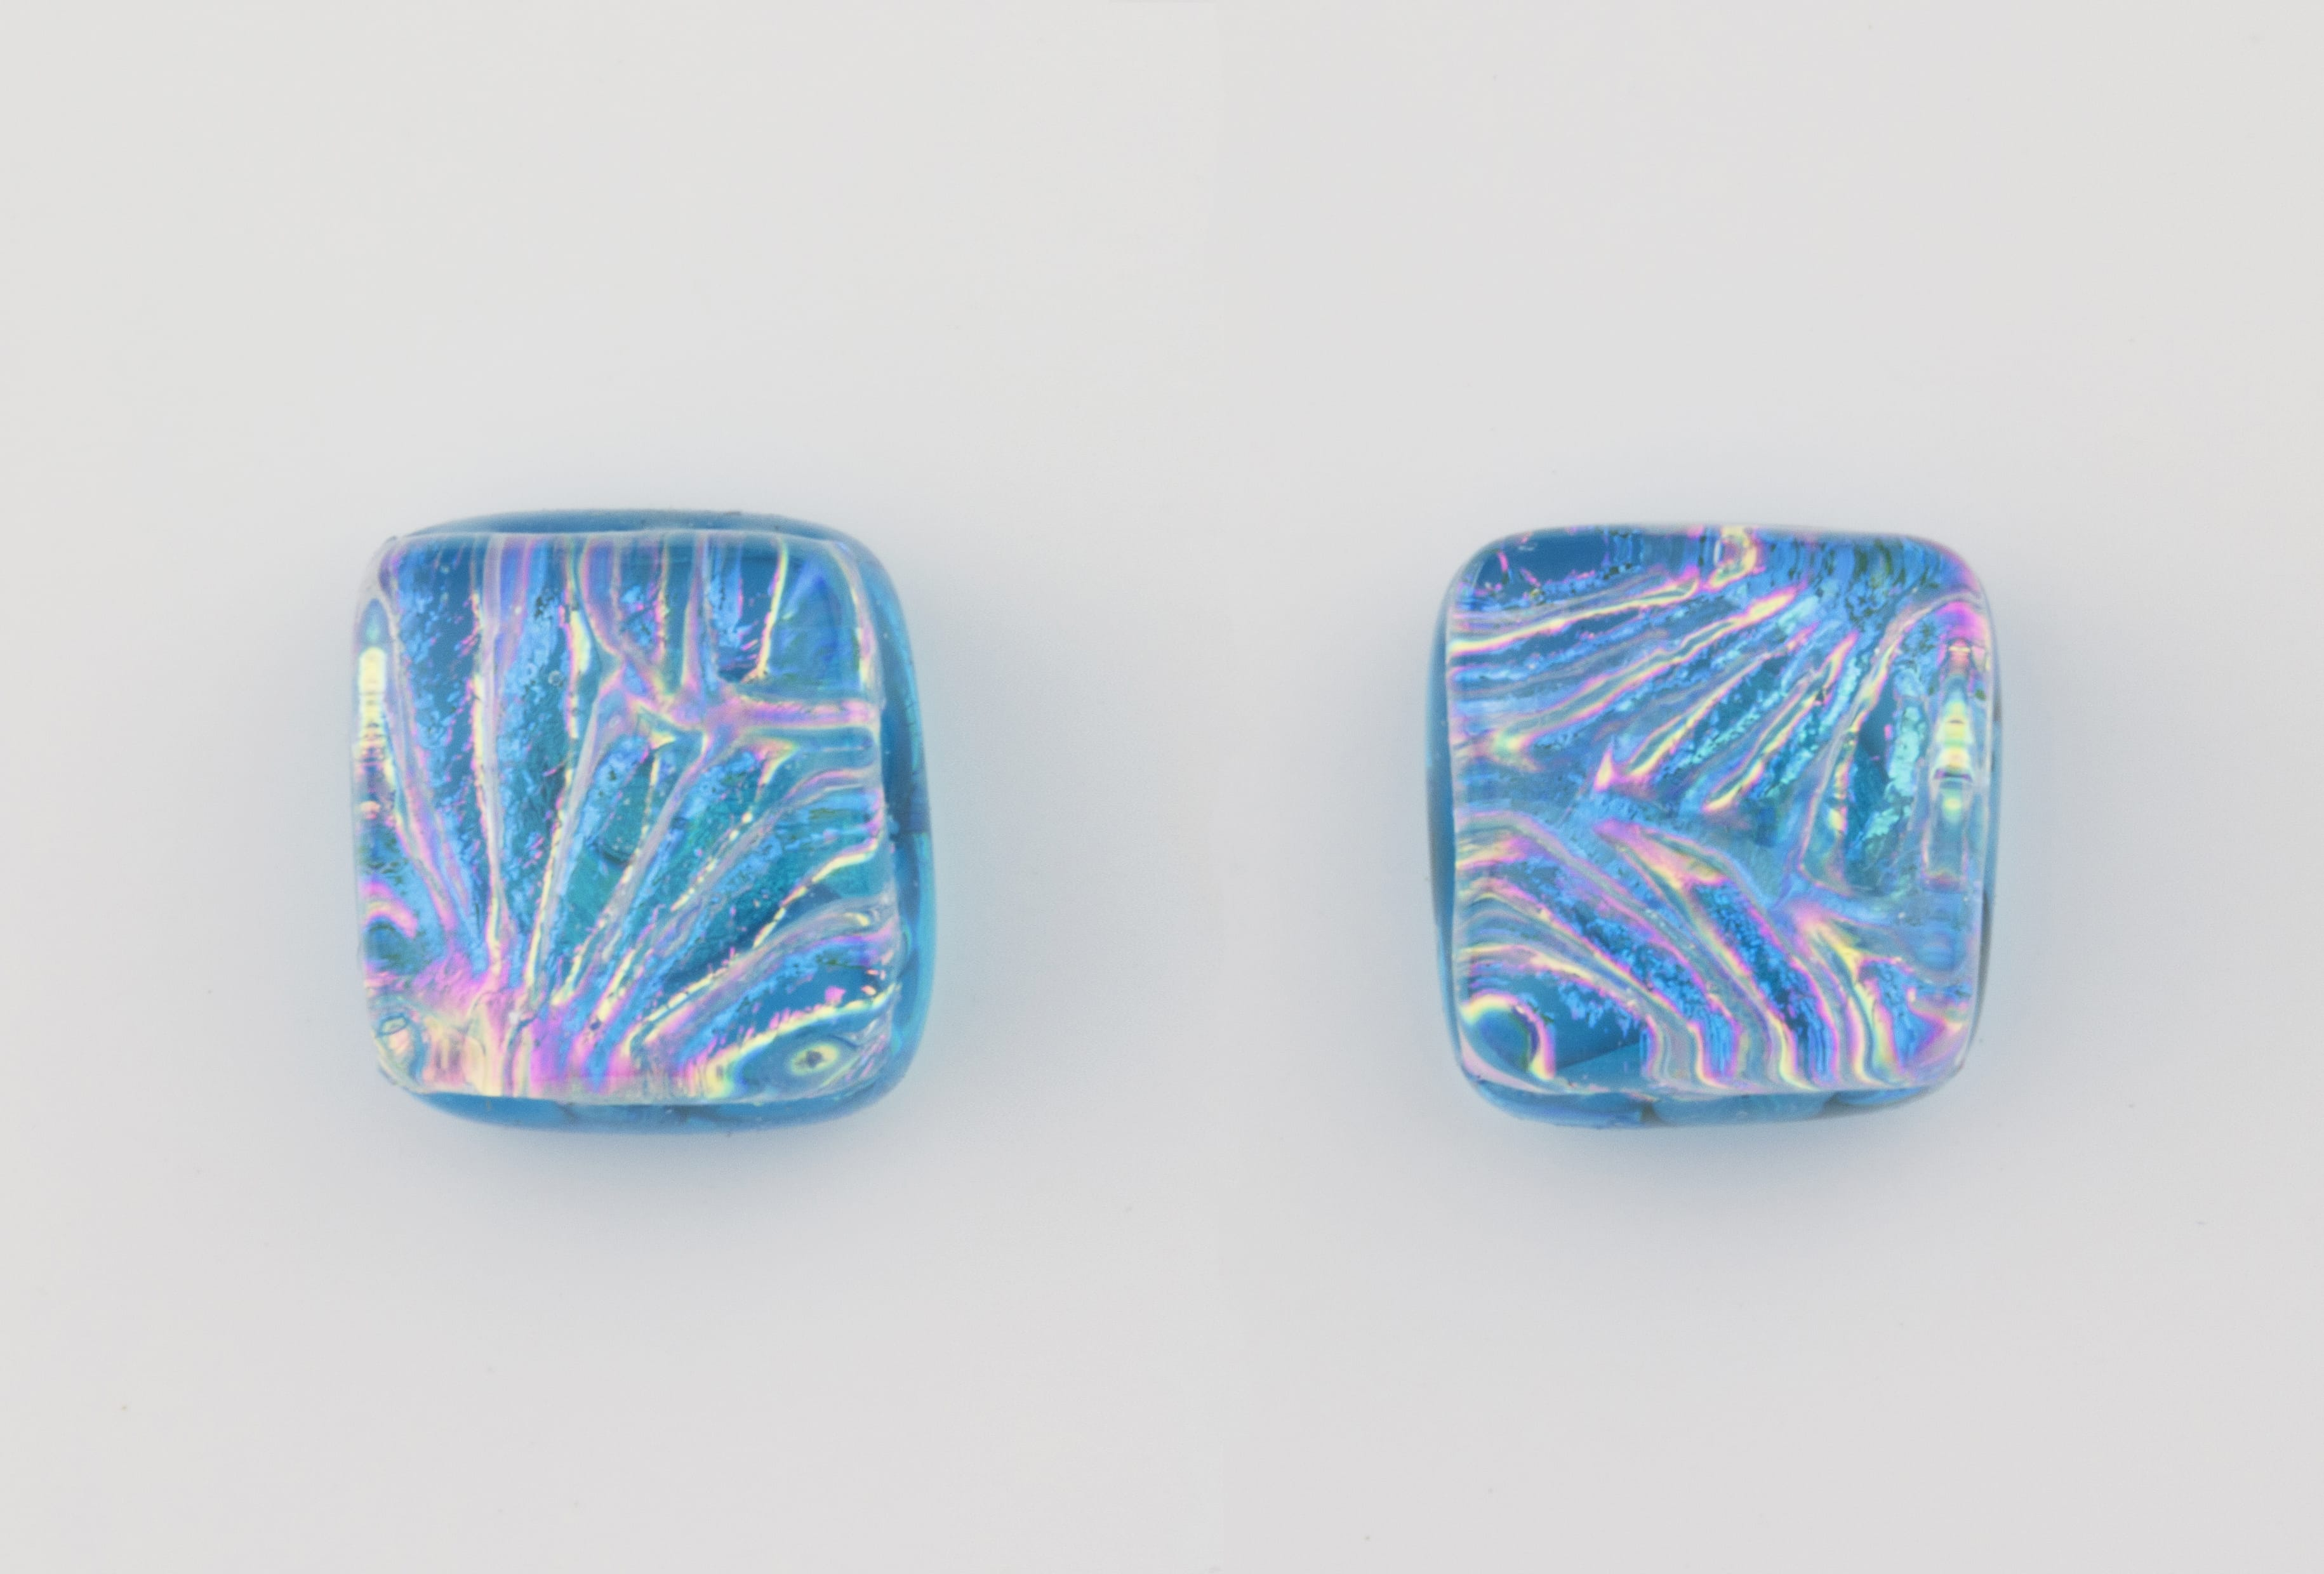 Dichroic glass jewellery uk, handmade blue stud earrings with dichroic starburst pattern, square, glass 8-10mm, sterling silver